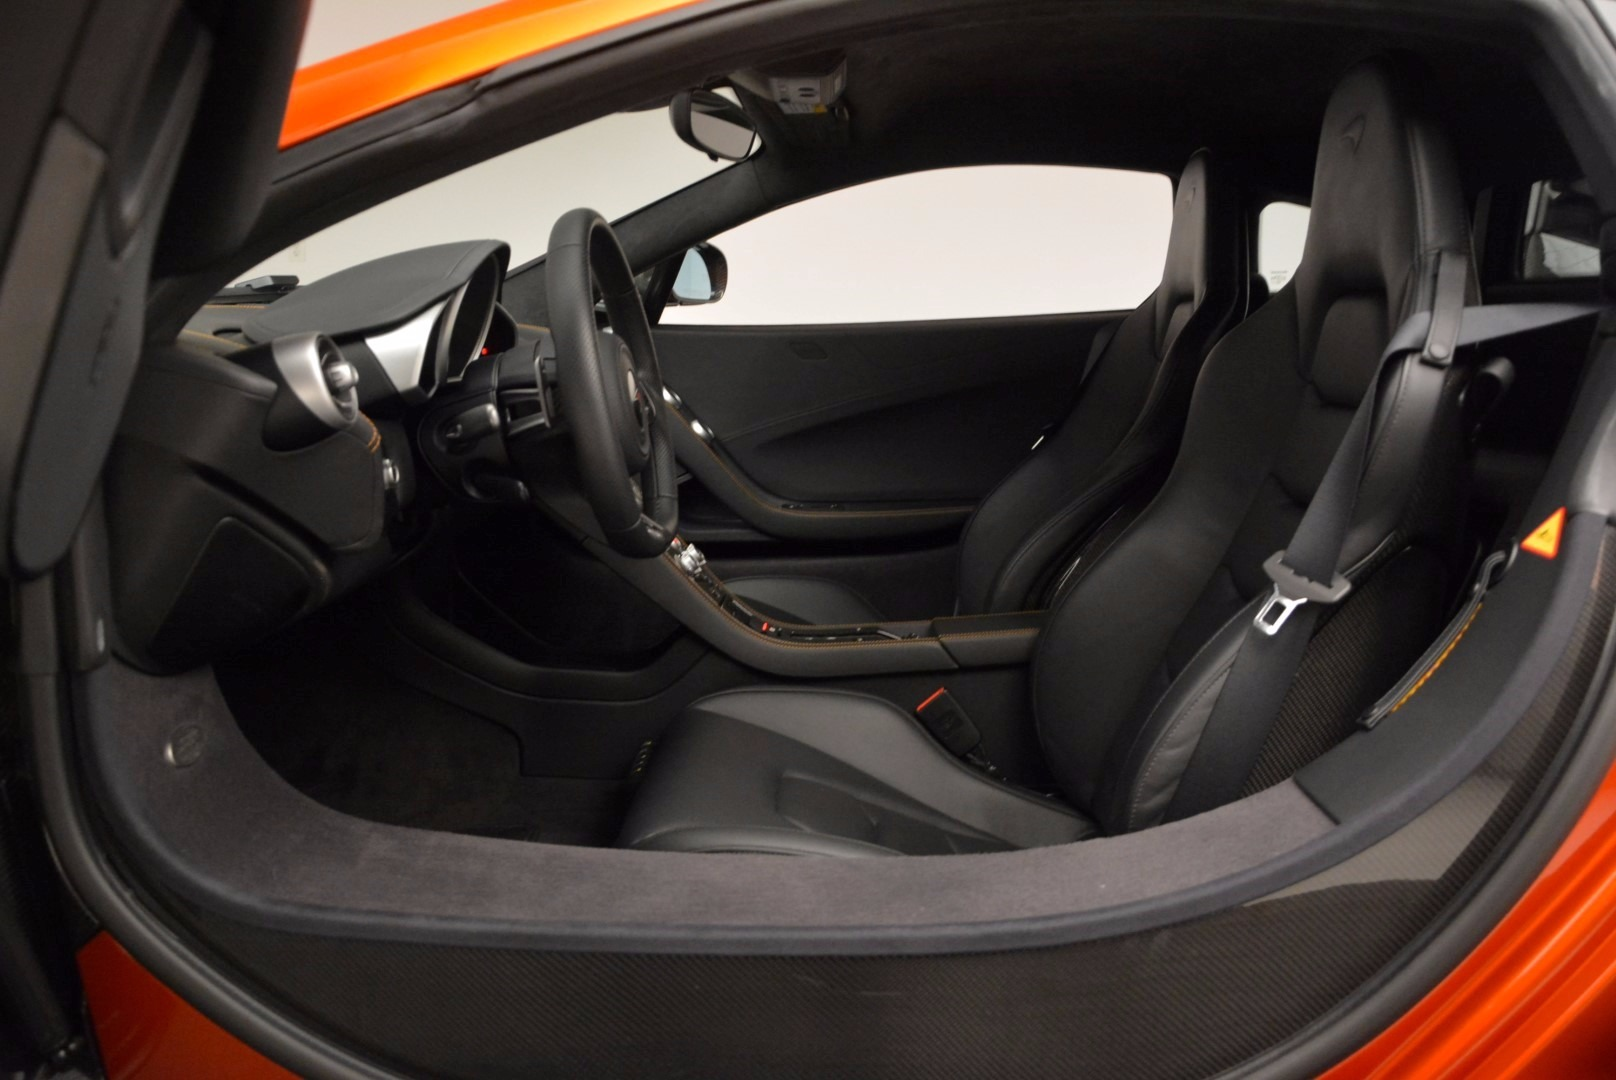 Used 2012 McLaren MP4-12C  For Sale In Greenwich, CT. Alfa Romeo of Greenwich, 3094 1035_p22